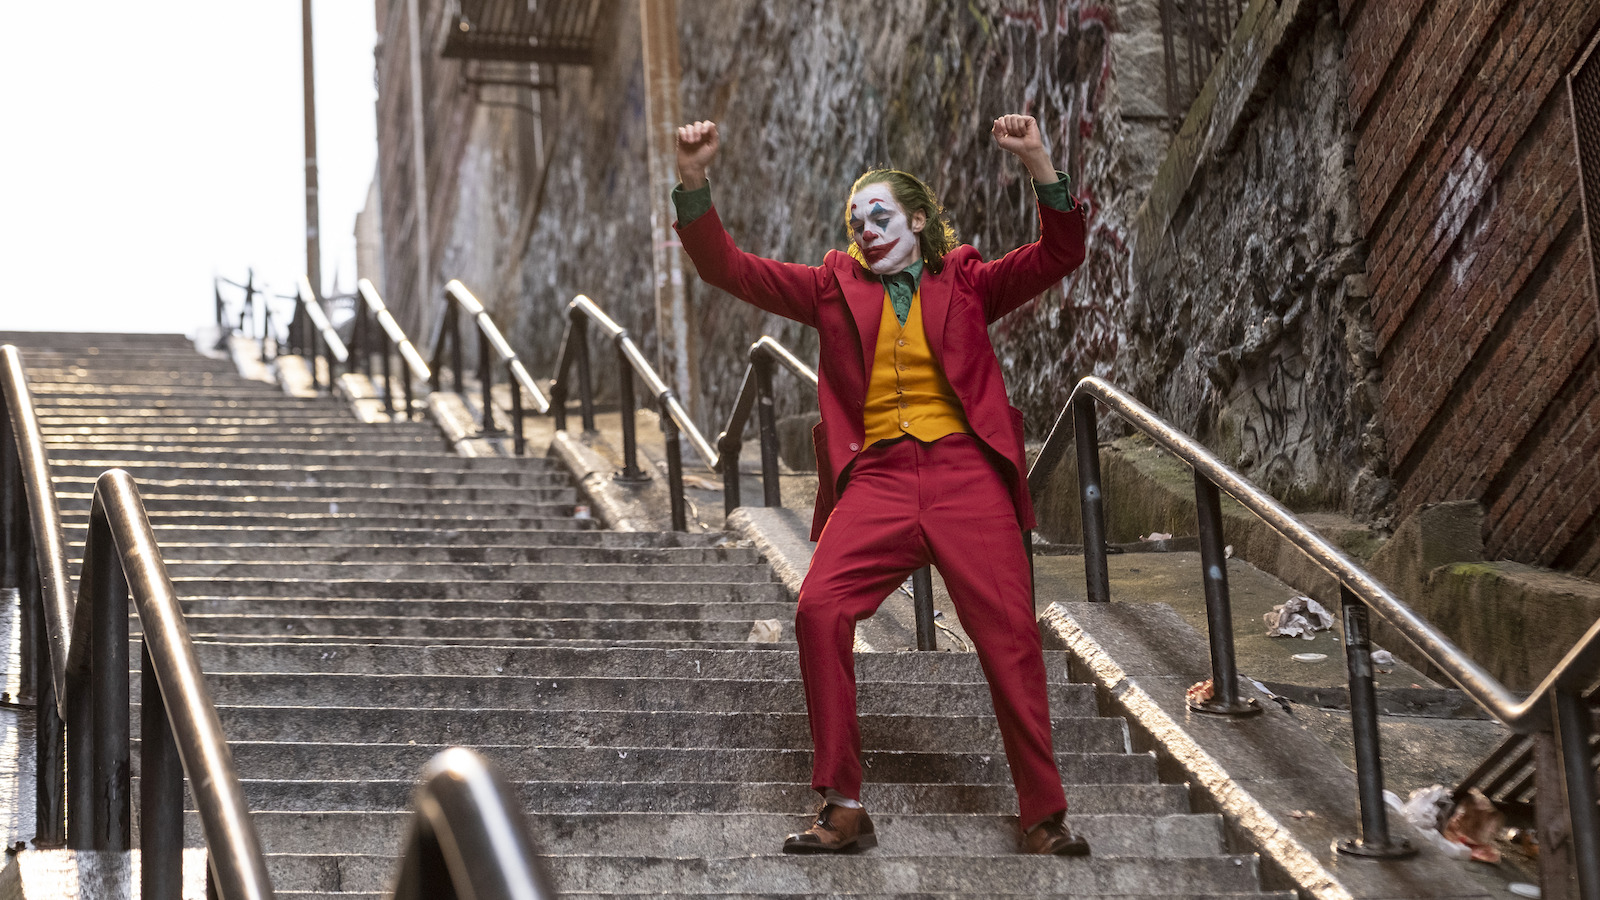 Joaquin Phoenix in Joker